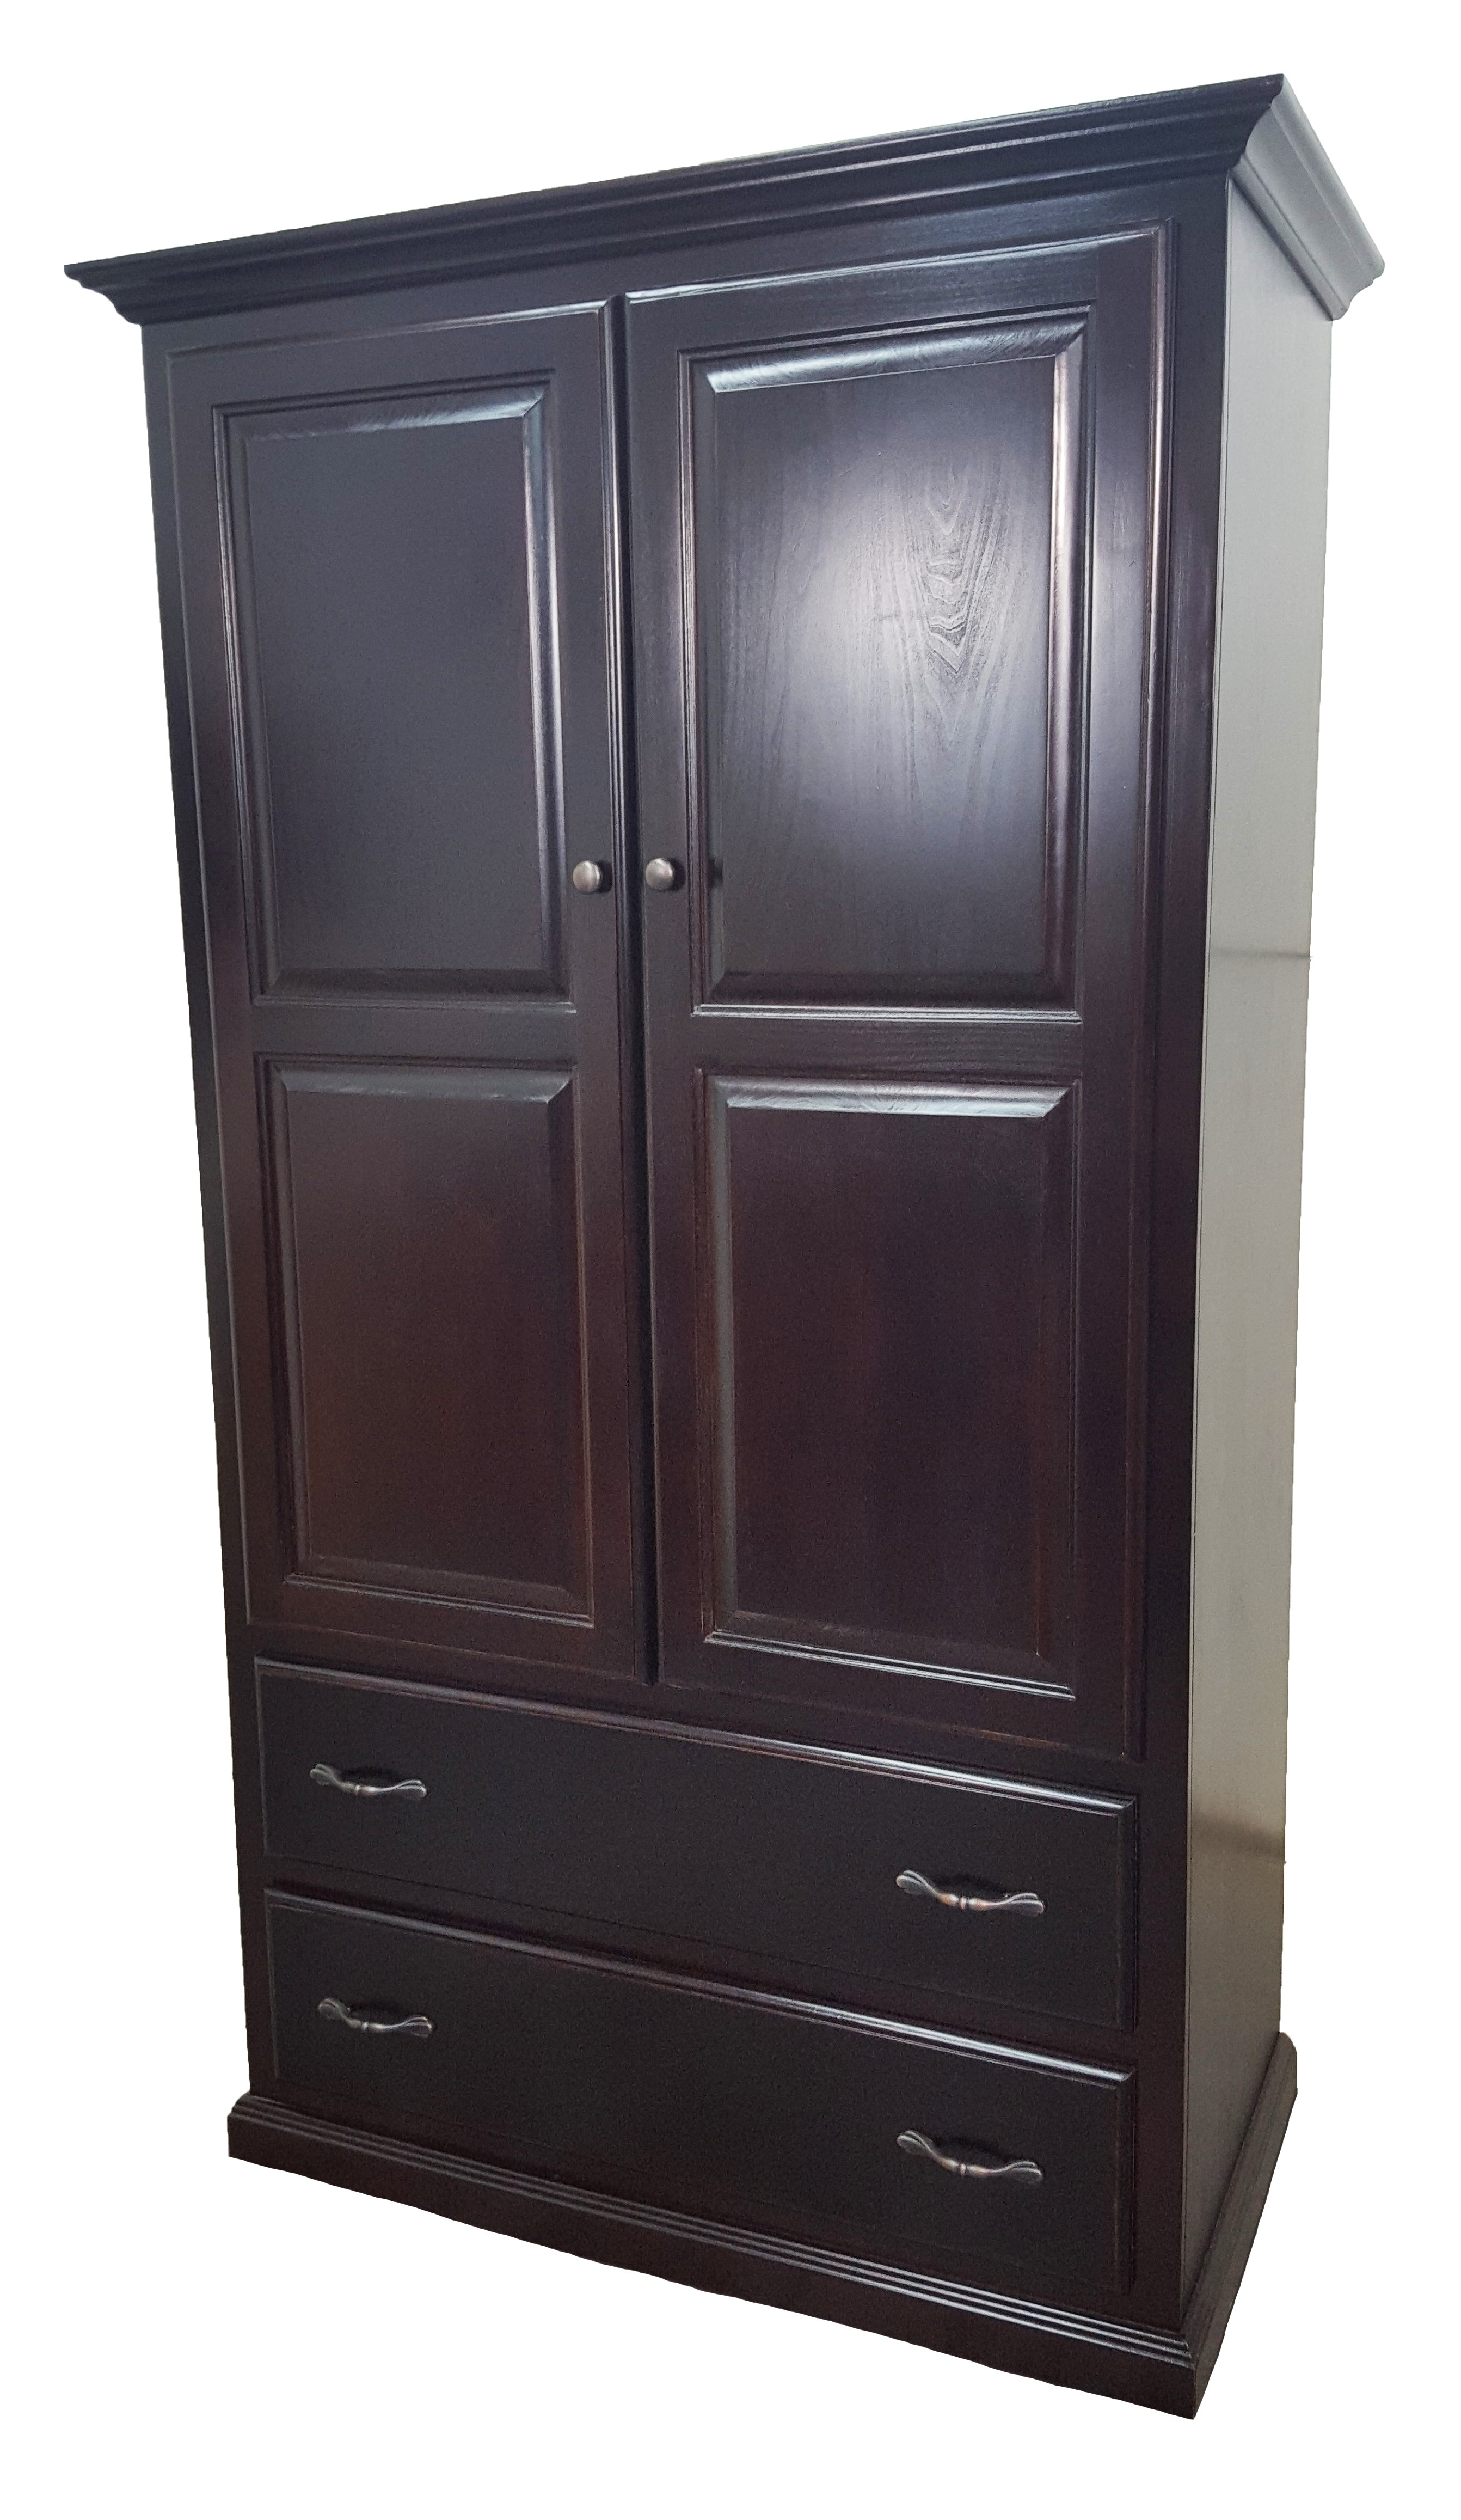 American Heartland Poplar Double Door Armoire W/Drawers 95794